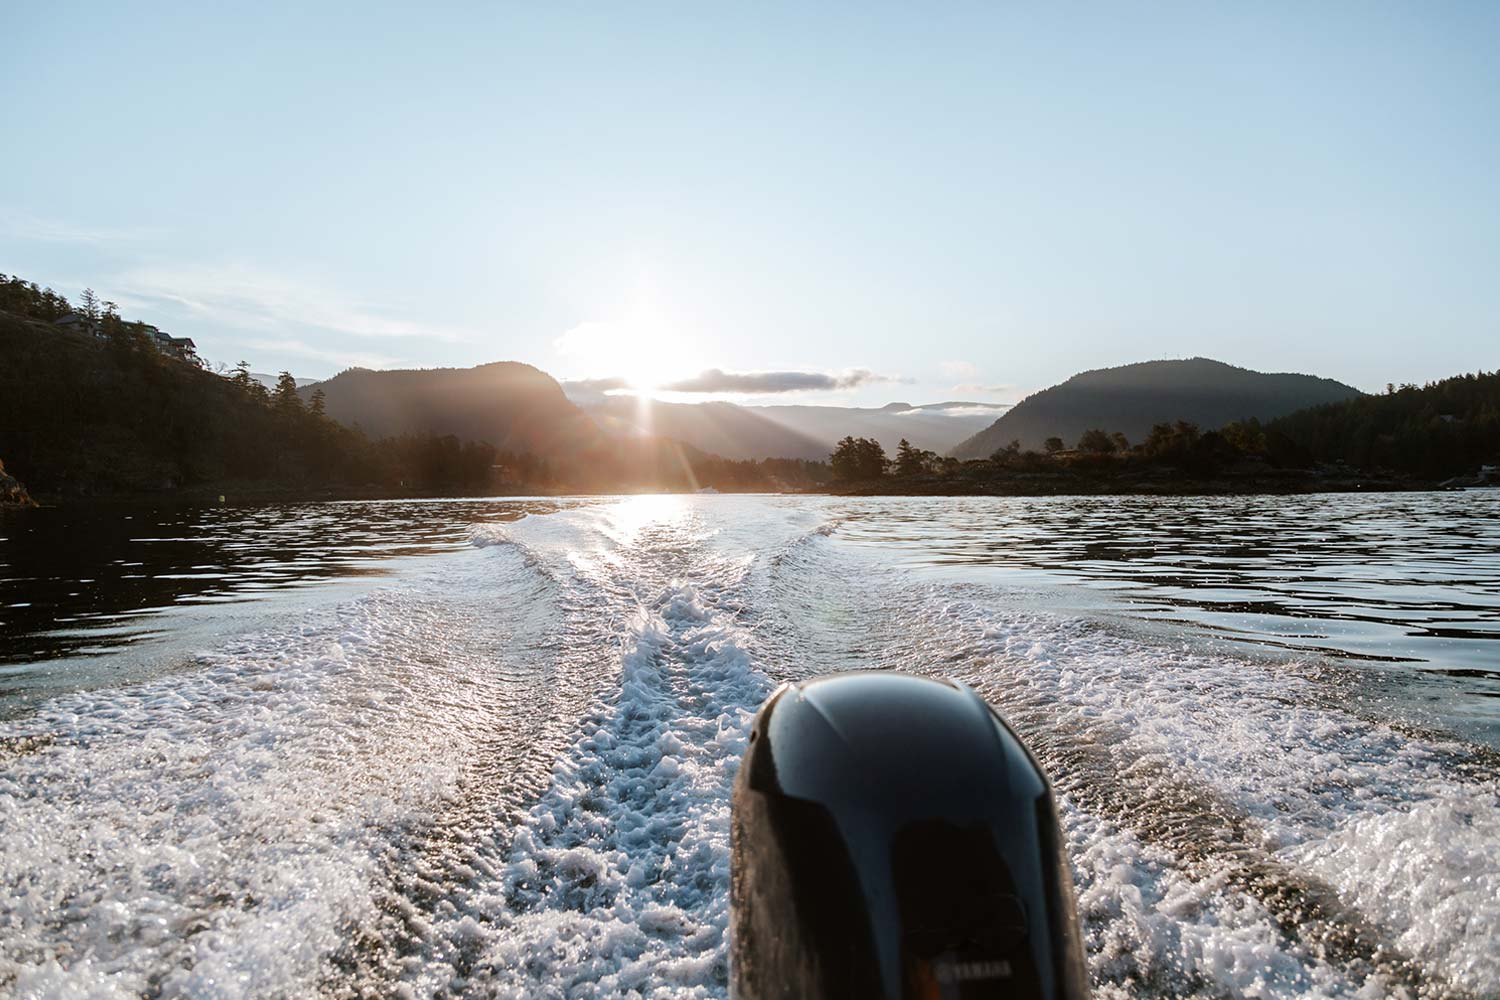 John Henry's powerboat engine gets up to speed and creates a wake in the sunny Pender Harbour.